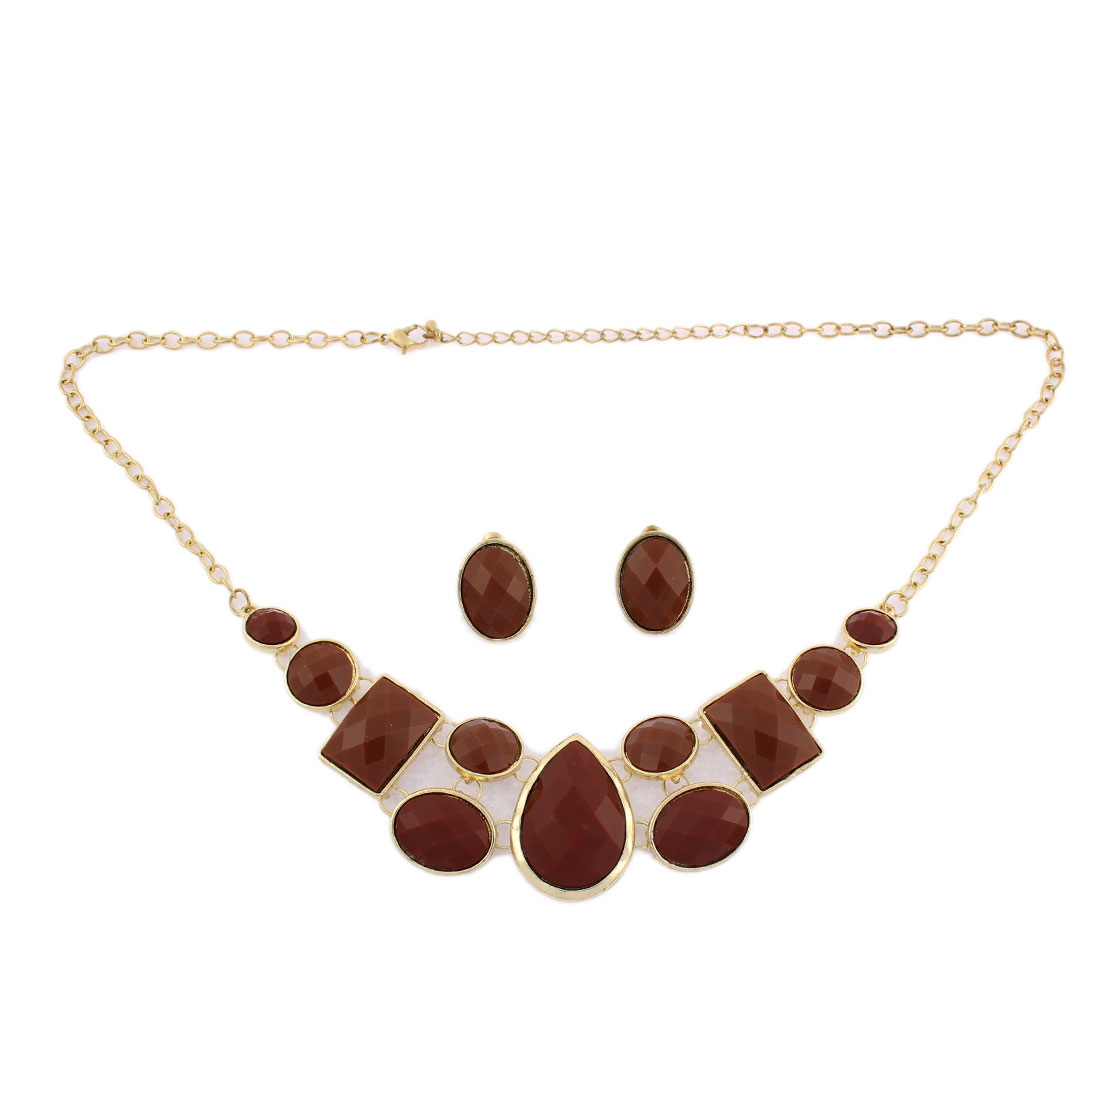 Oval Red Faceted Pendant Gold Plated Chain Necklace Earring Set Jewelry